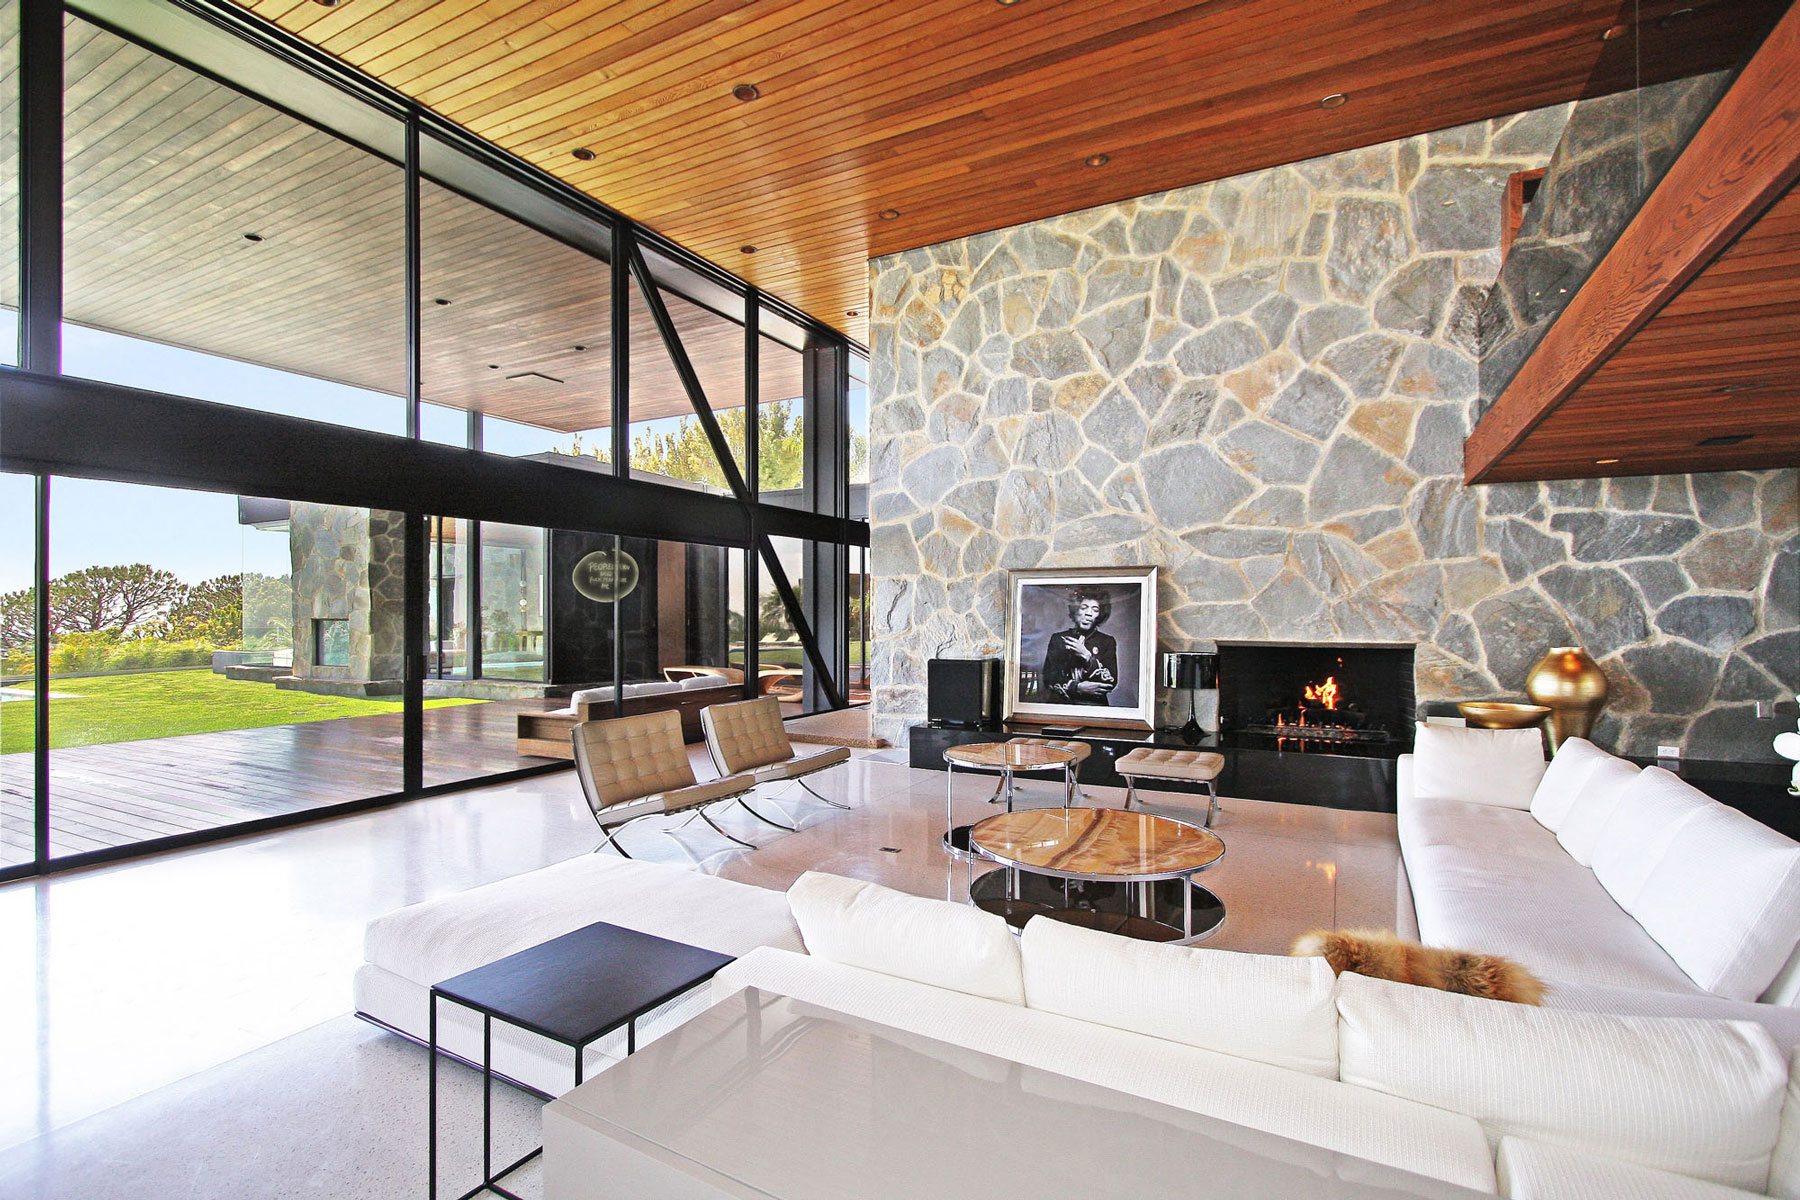 Floor-to-Ceiling Windows, Contemporary Fireplace, Coffee Table, Revamped Interior in Beverly Hills